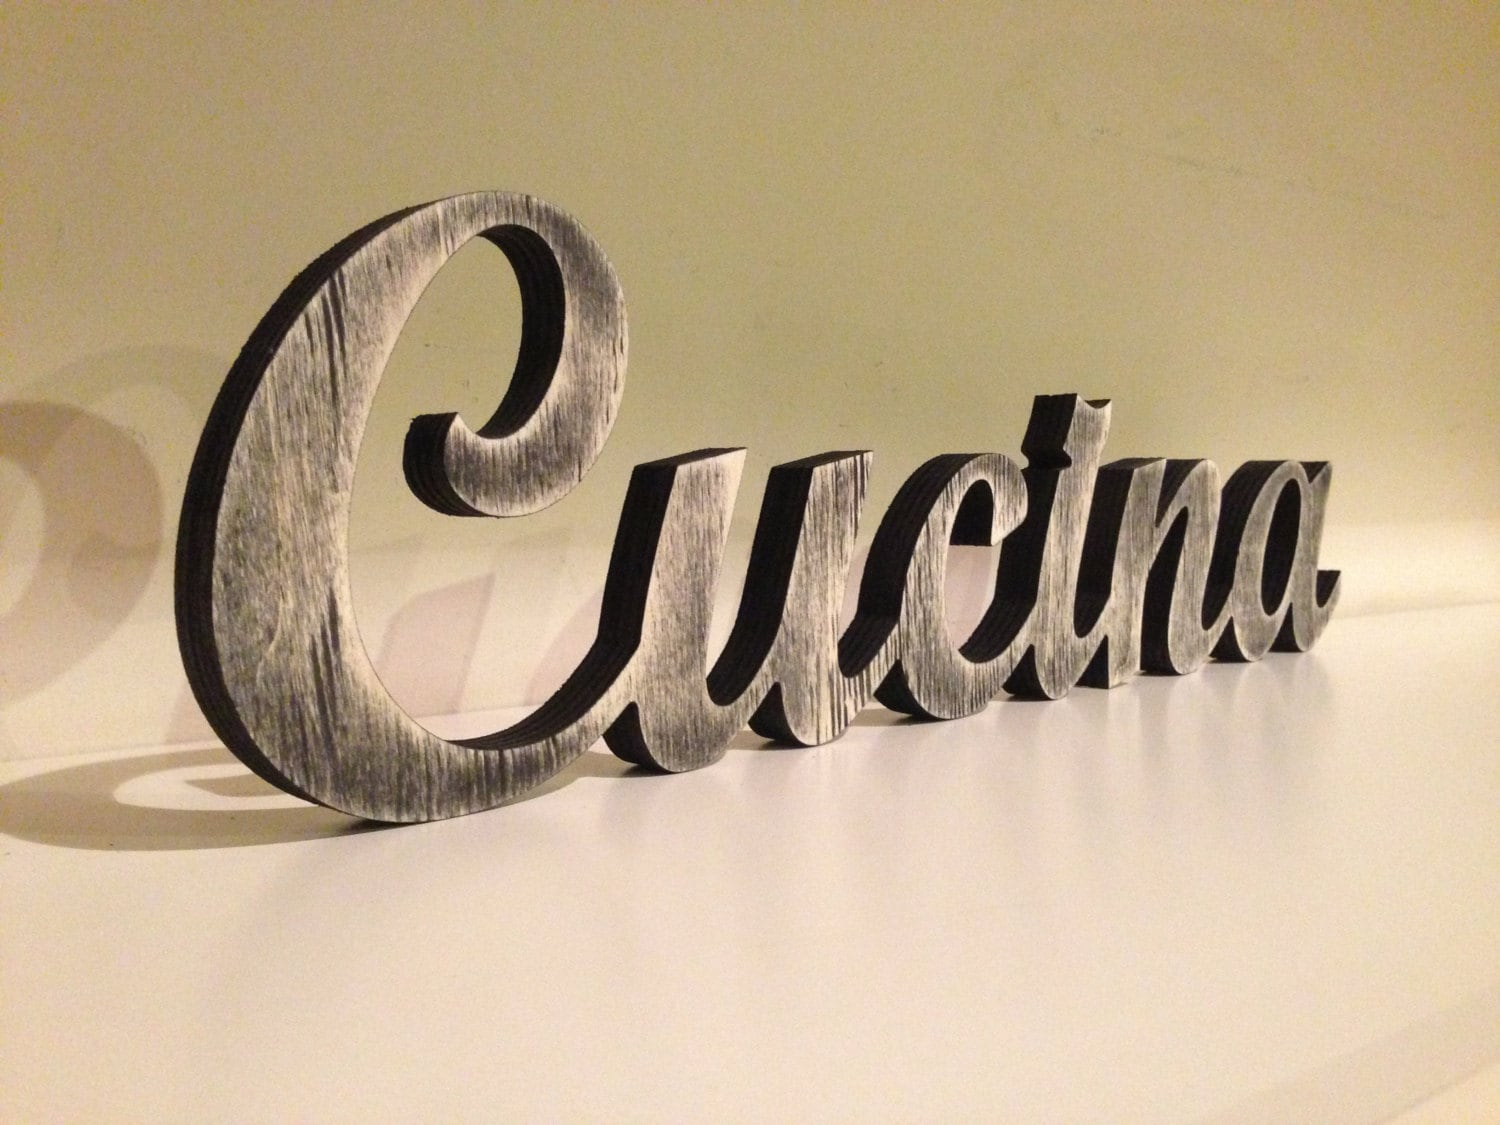 Cucina Kitchen Sign Cucina Italiana Italian Word For Kitchen Kitchen Sign Kitchen Decor Kitchen Wood Sign Wall Hanging